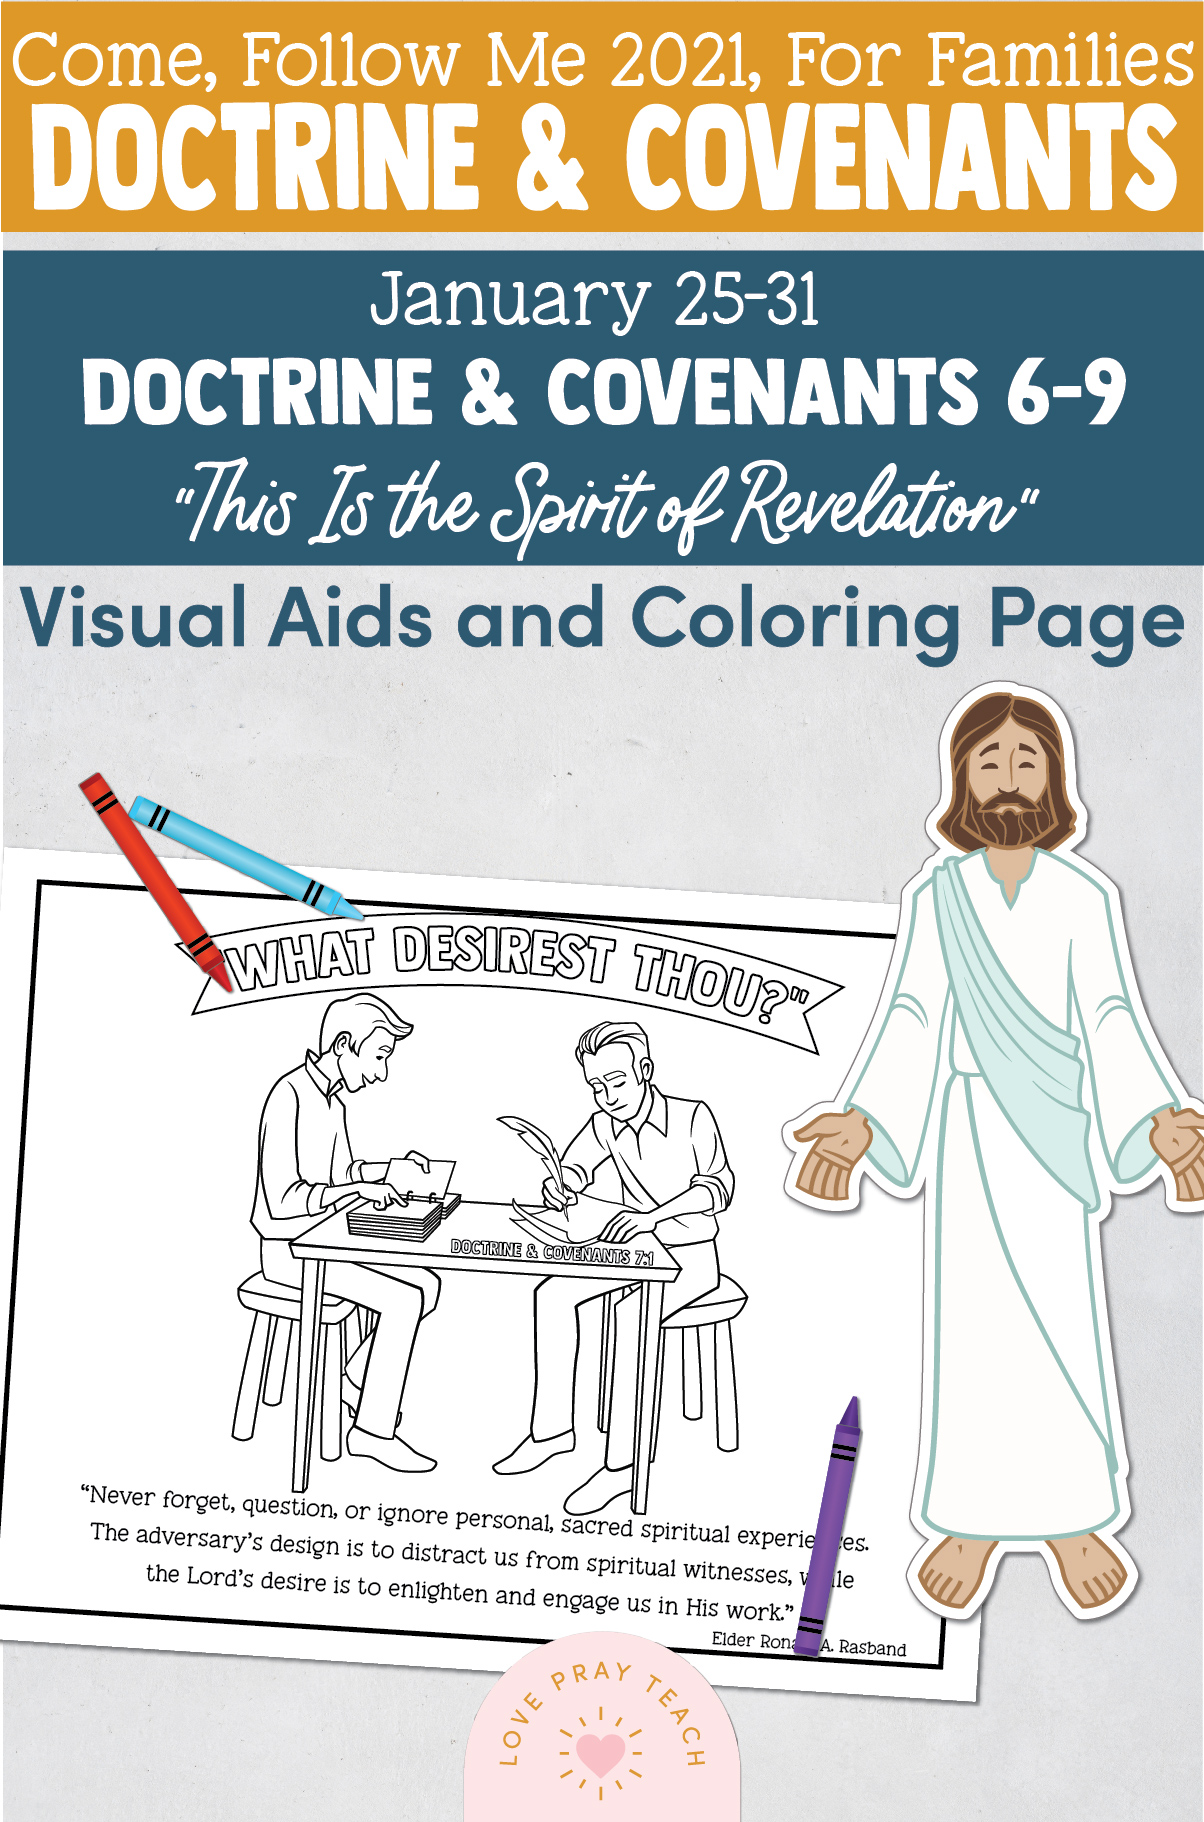 """Come, Follow Me—For Individuals and Families: Doctrine And Covenants 2021, January Week 5: January 25-31, Doctrine and Covenants 6-9, """"This Is the Spirit of Revelation"""""""